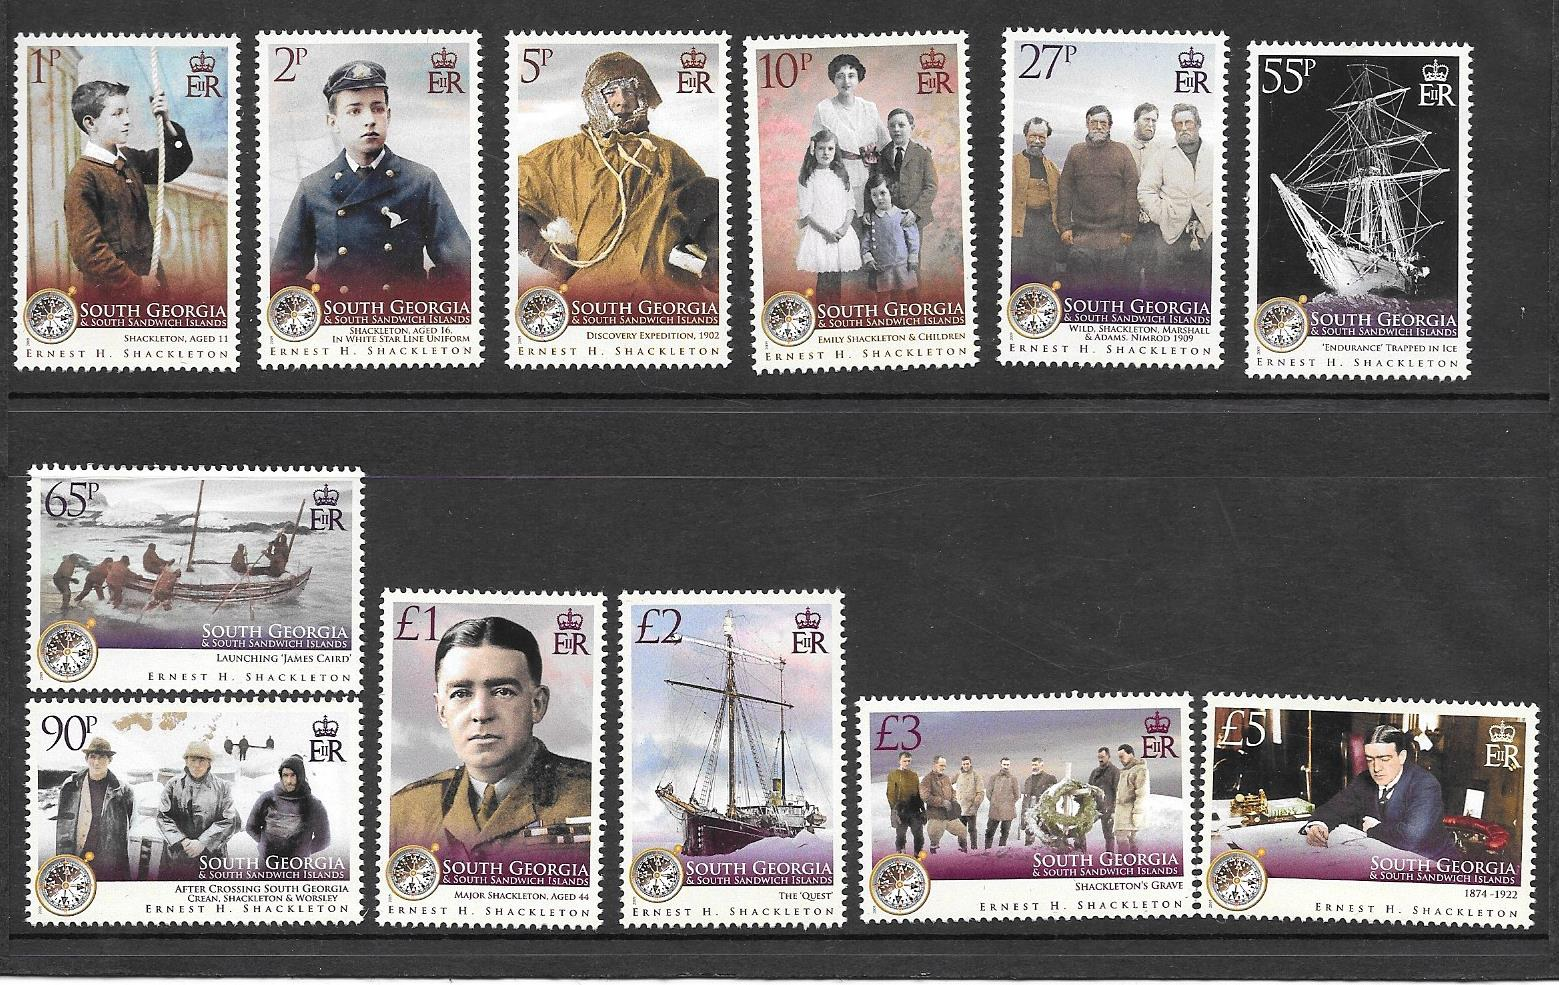 Shackleton Set Stamps 2009